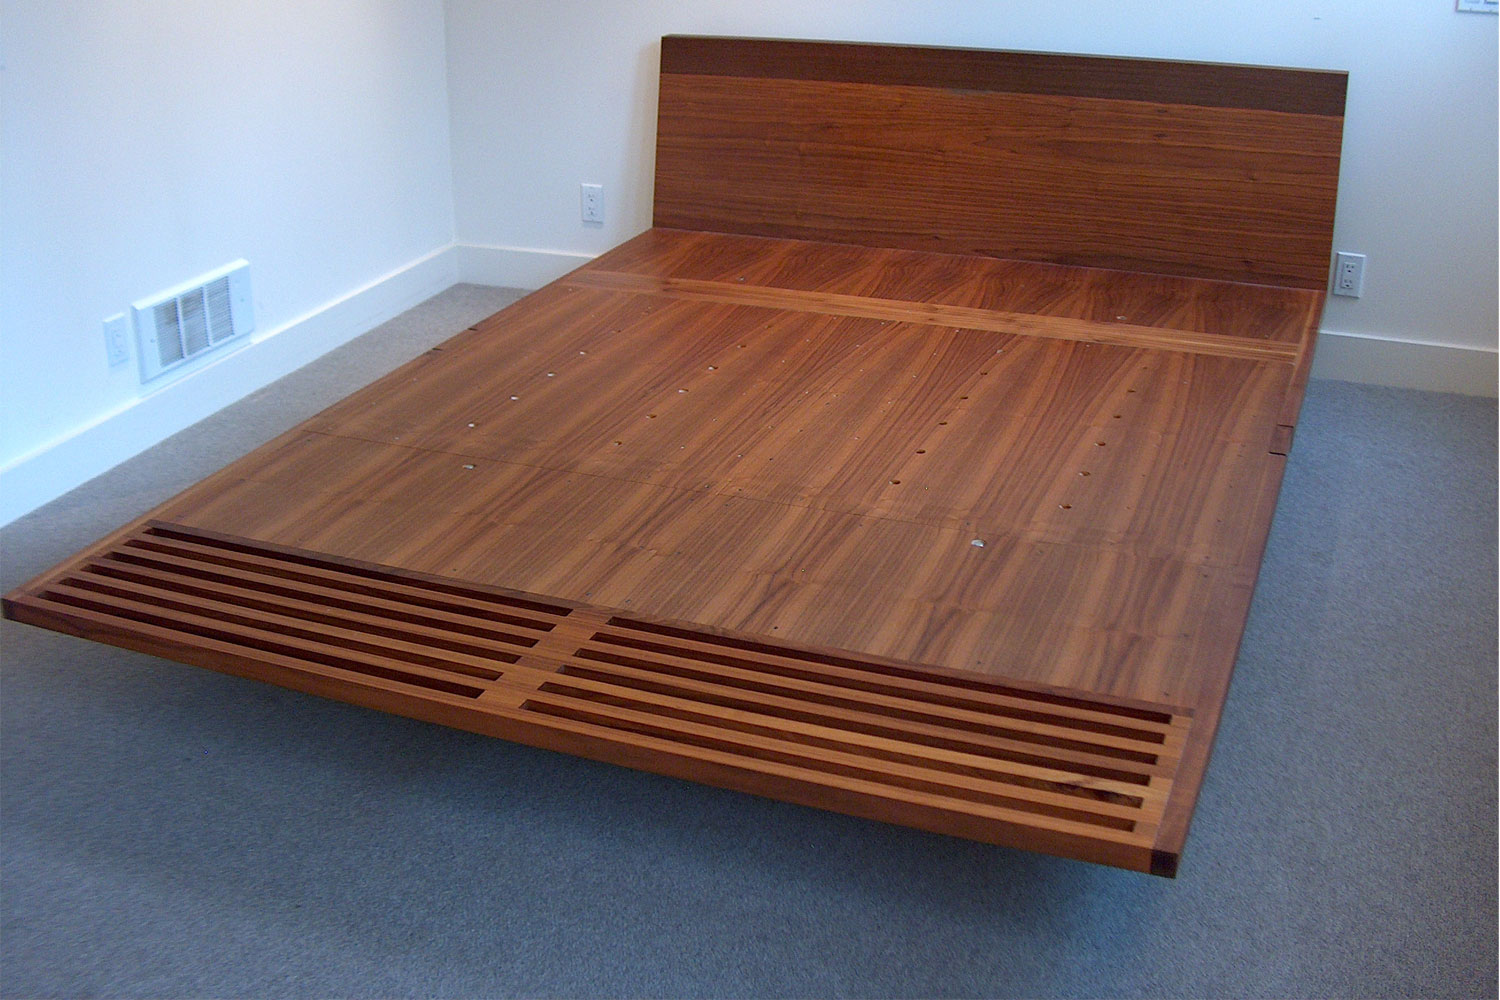 Drift Bed furniture